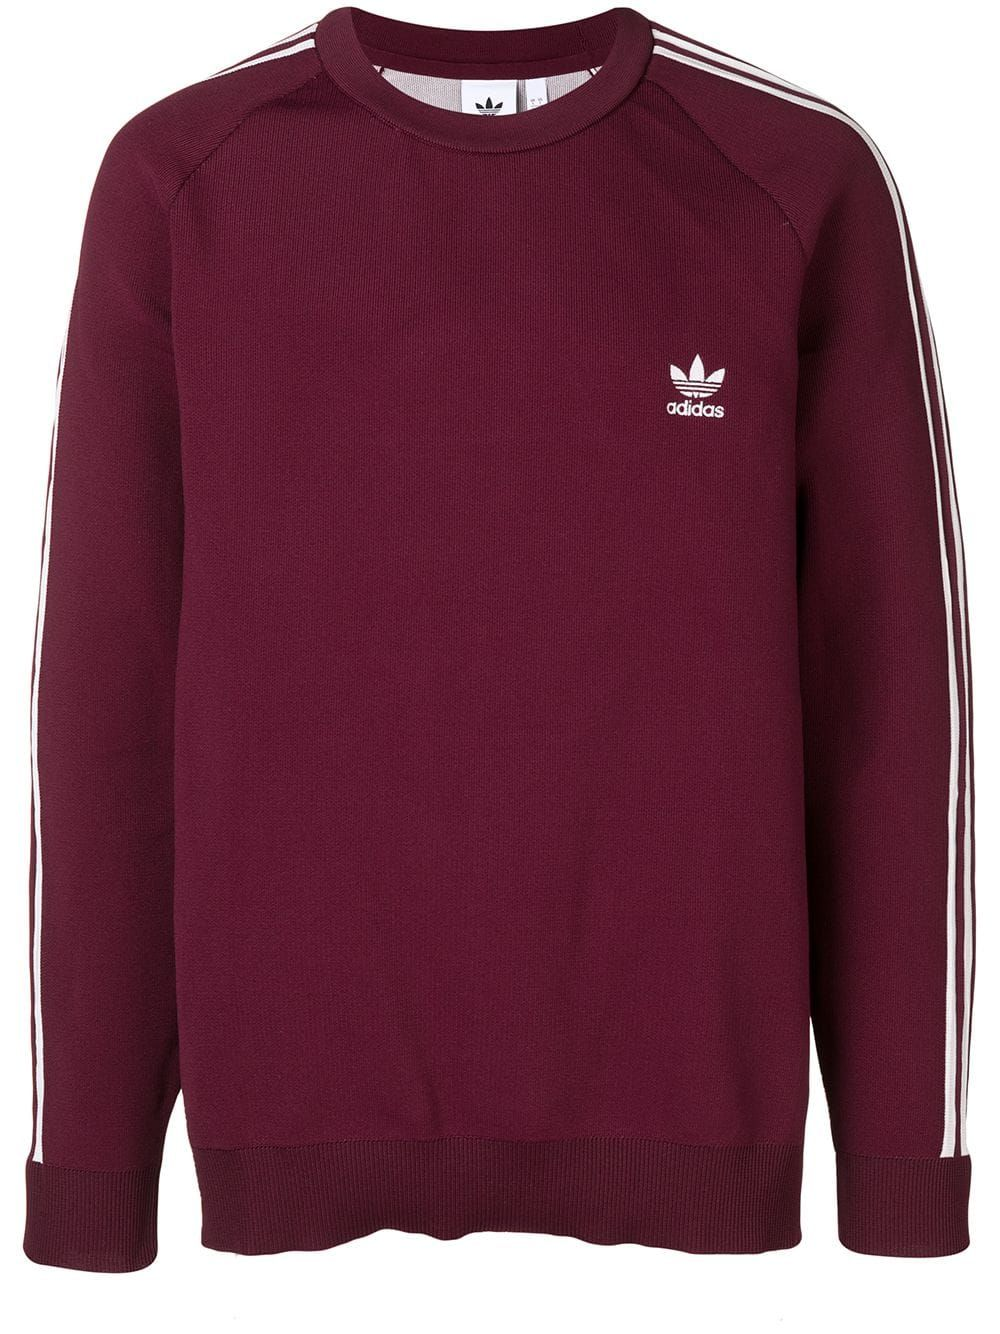 37eaa7da2 ADIDAS ORIGINALS ADIDAS DH5753KNITCREWMAROON - RED.  adidasoriginals  cloth